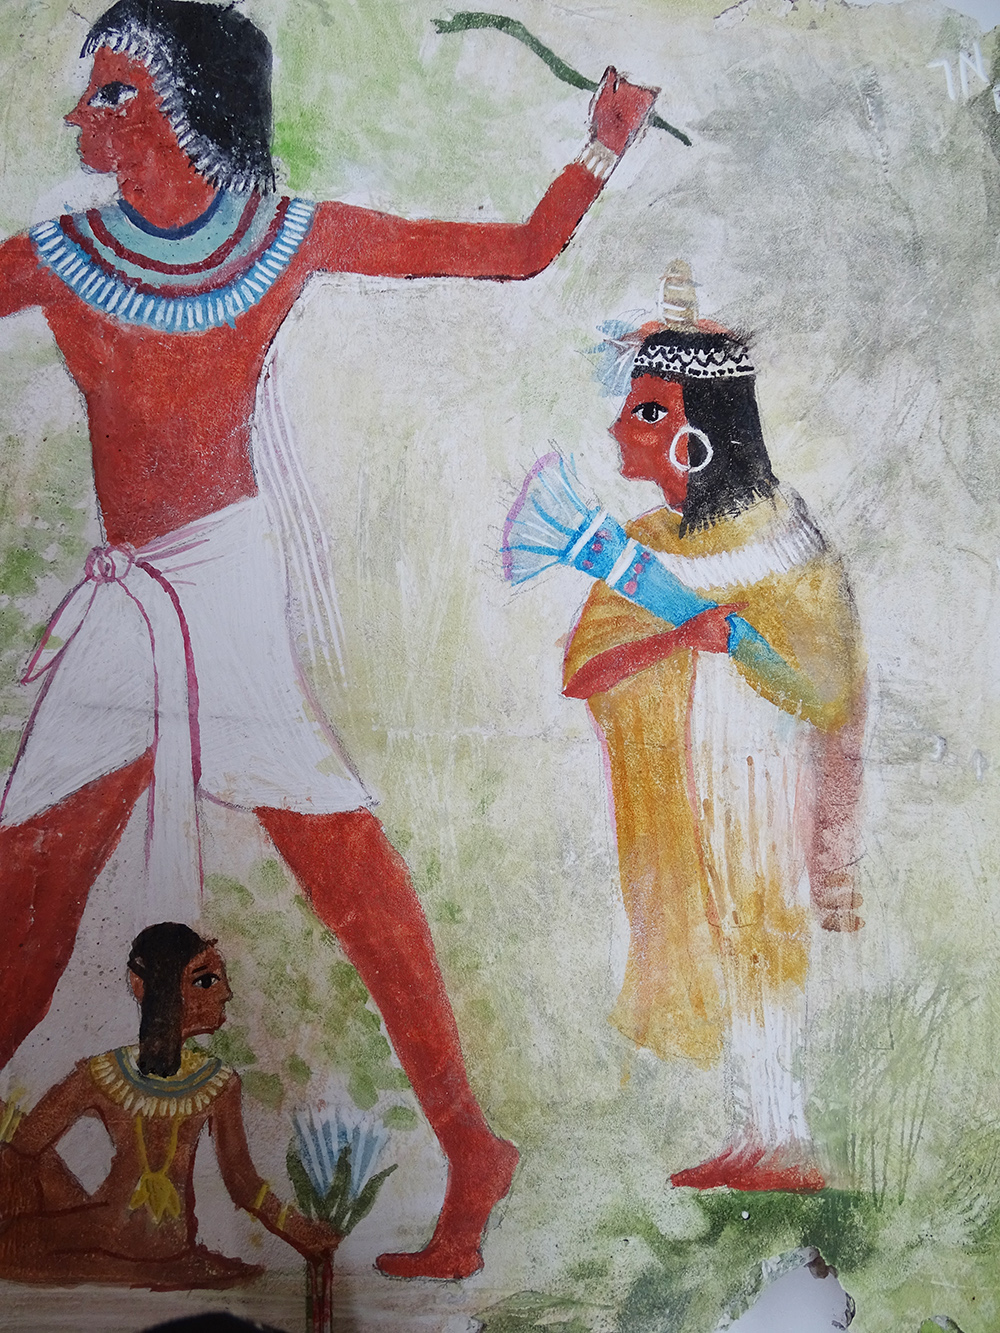 detail of wall painting inspired by Nebamun hunting in the marshes, Nebamun's tomb-chapel